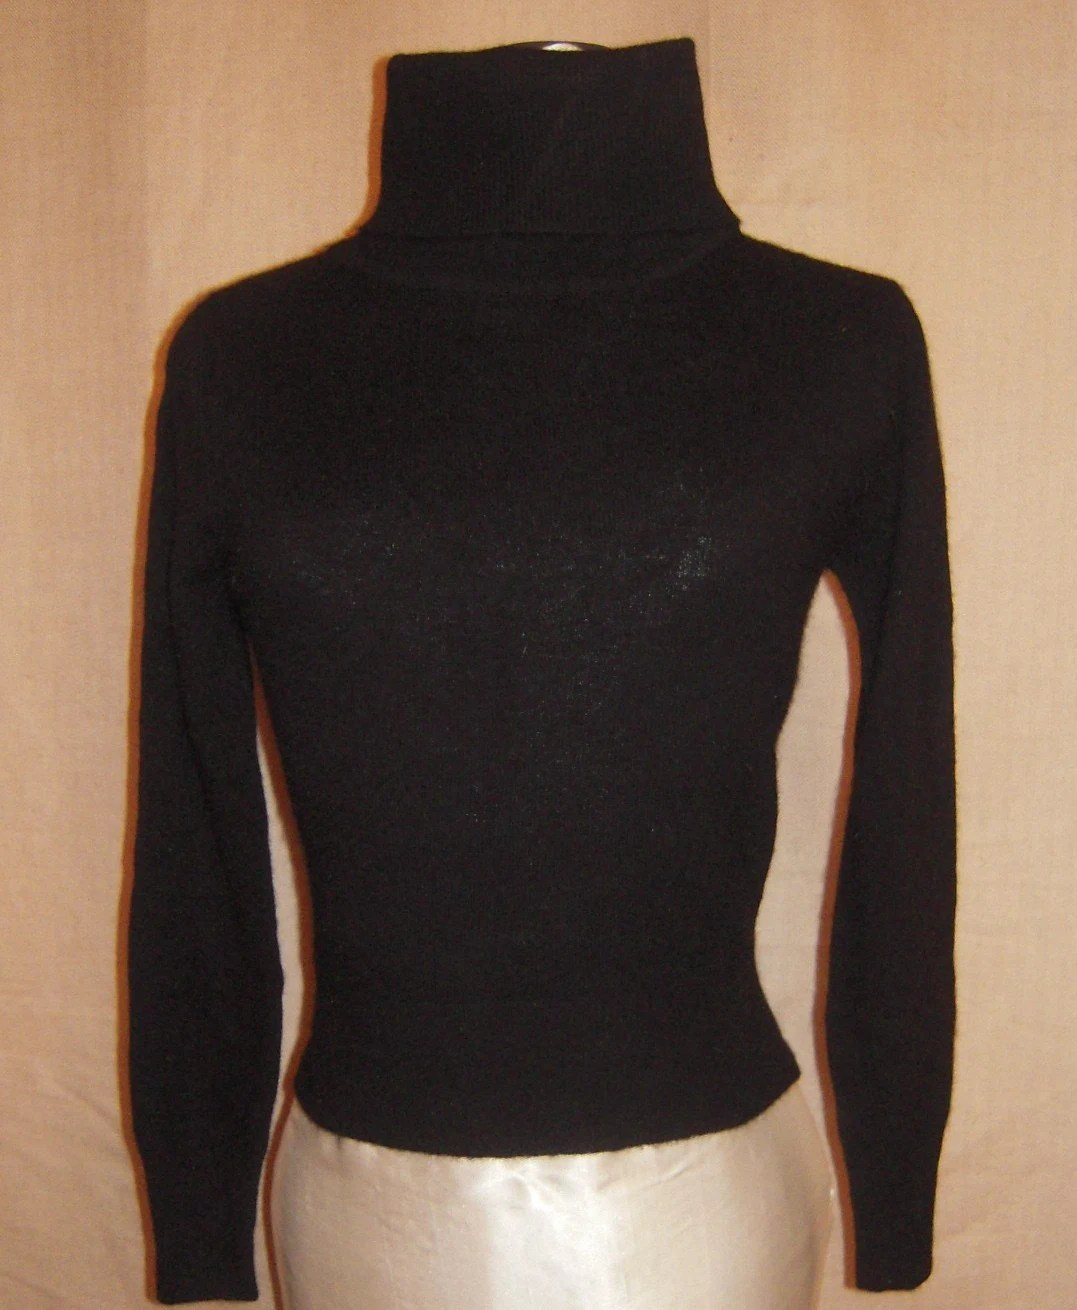 Designer Lambswool and Angora  Black Turtleneck Sweater.  1980's Tric-Trac Ltd, by Phyllis Keitlen. Designers Den vintage overstock never worn, brand new condition.  Limited Stock.   FREE DOMESTIC SHIPPING.